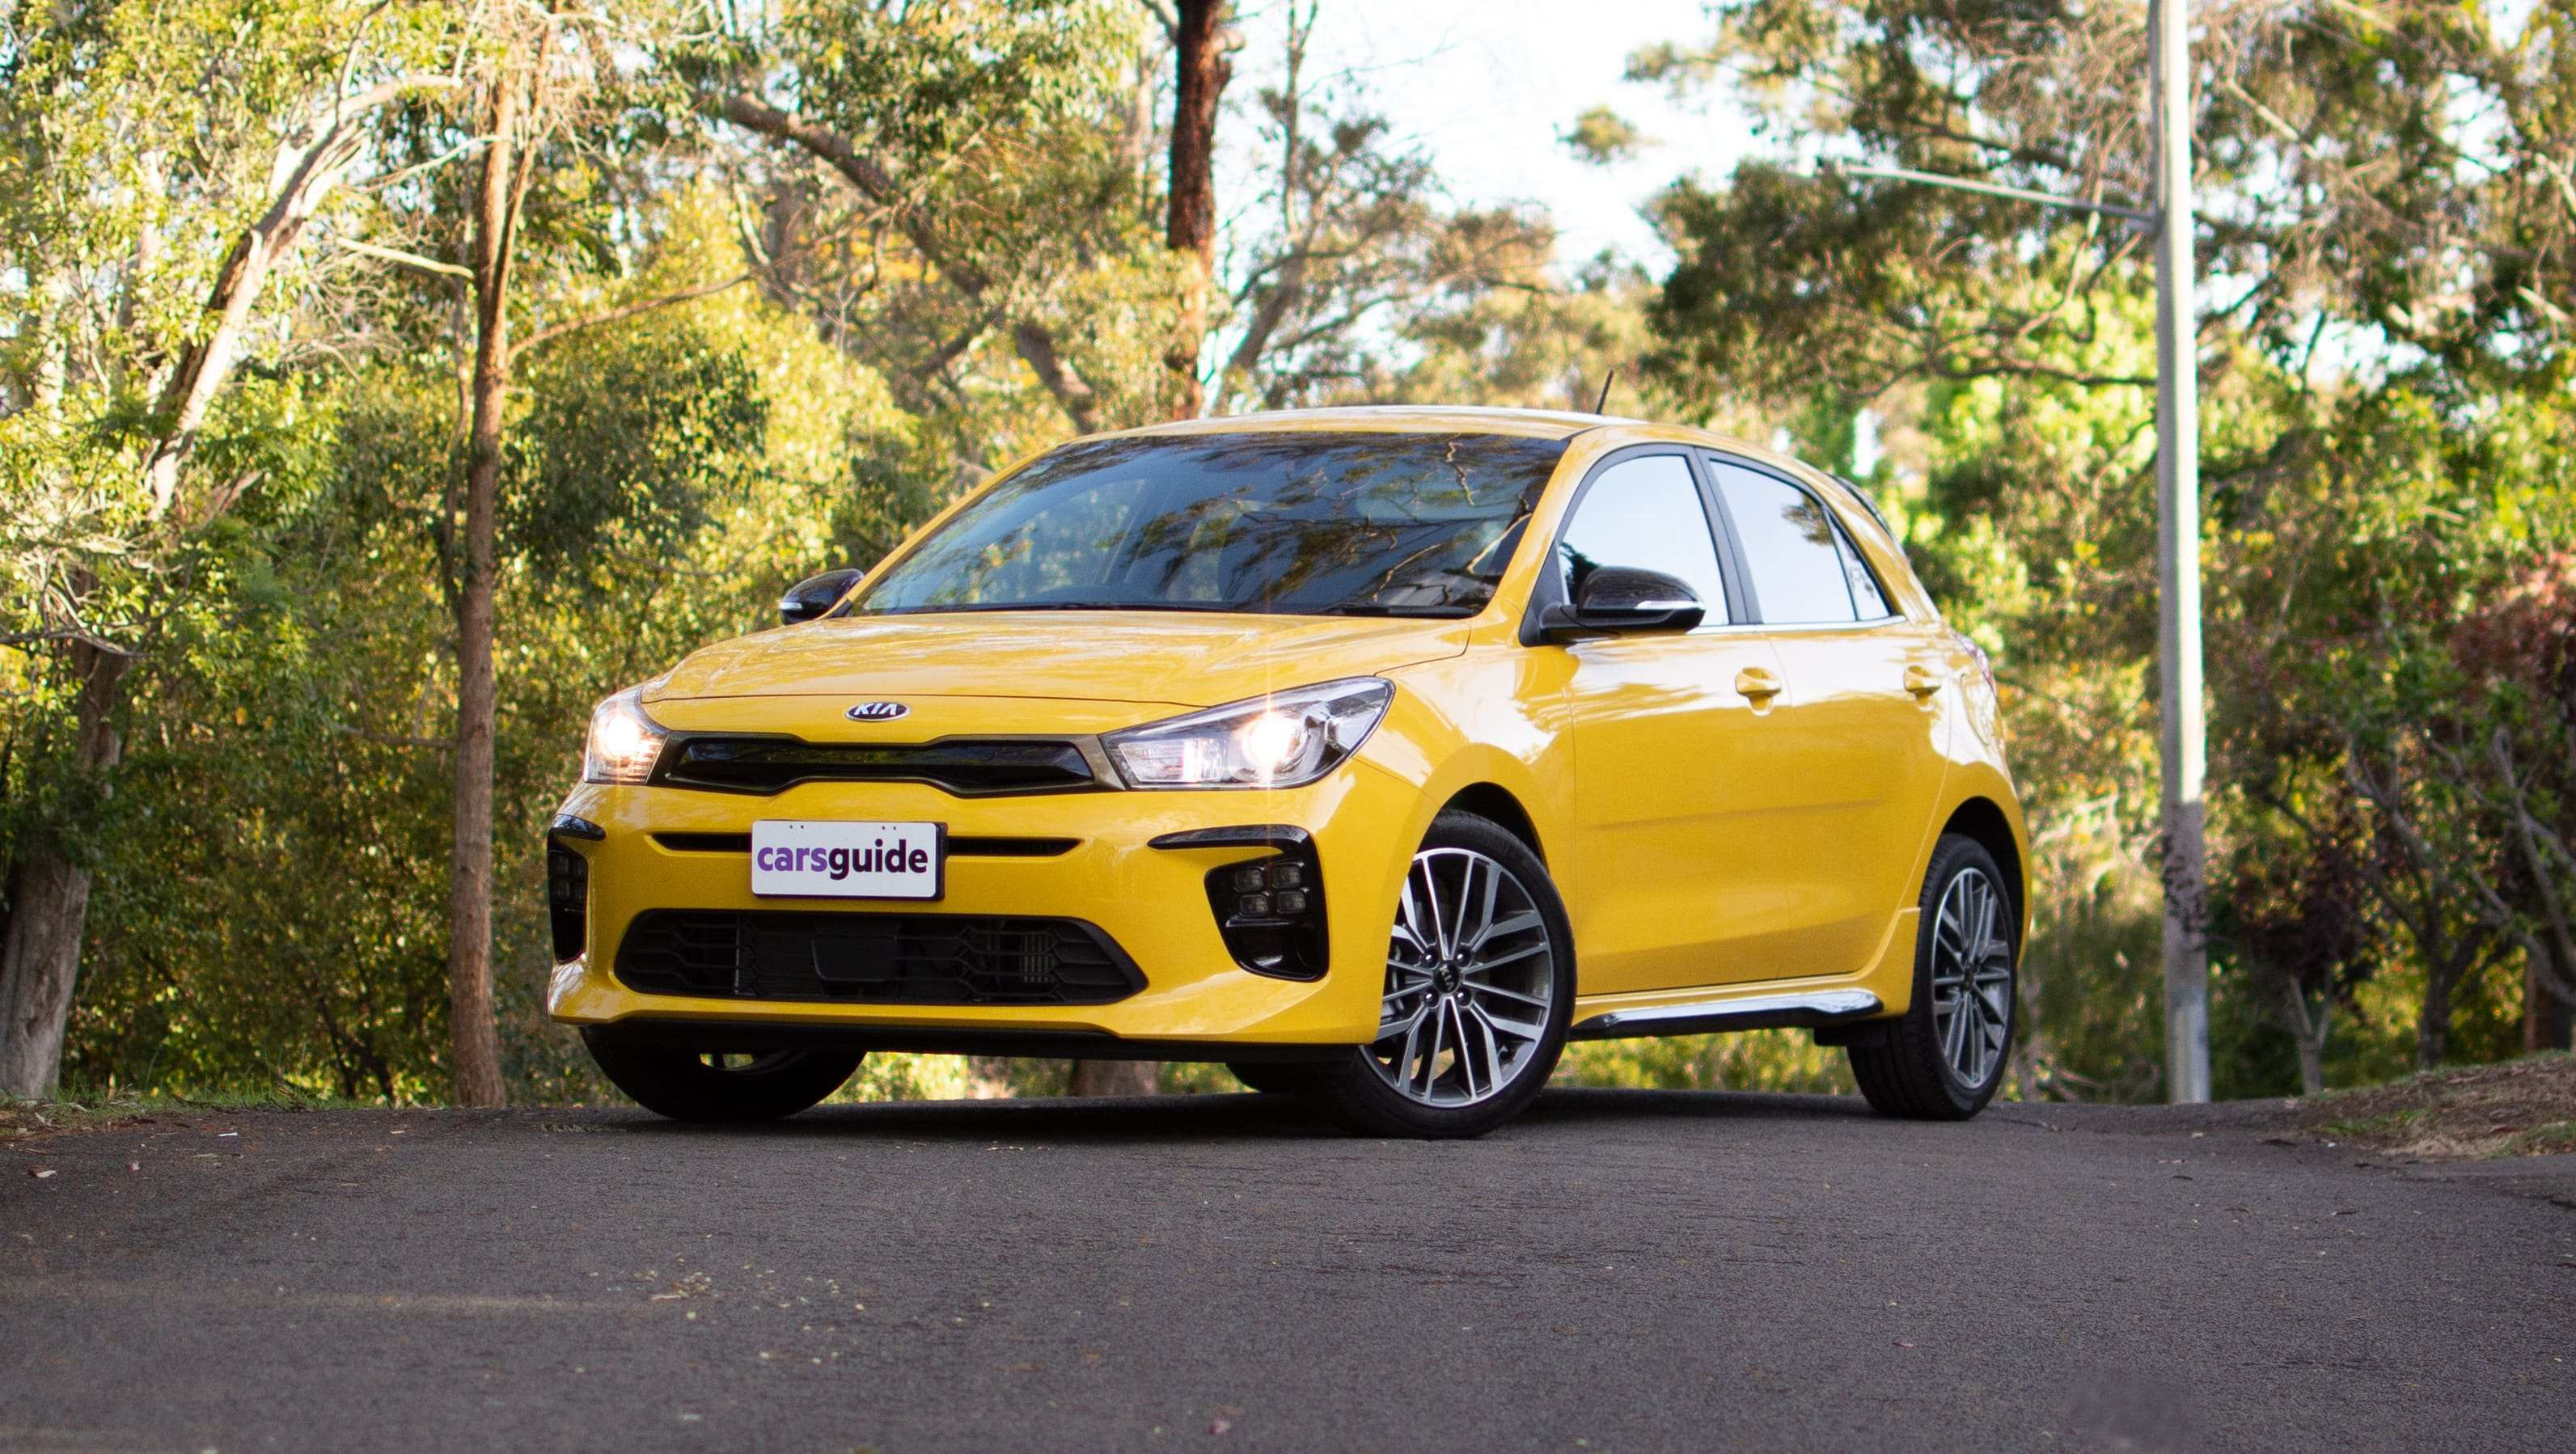 98 The Best 2019 All Kia Rio Release Date And Concept